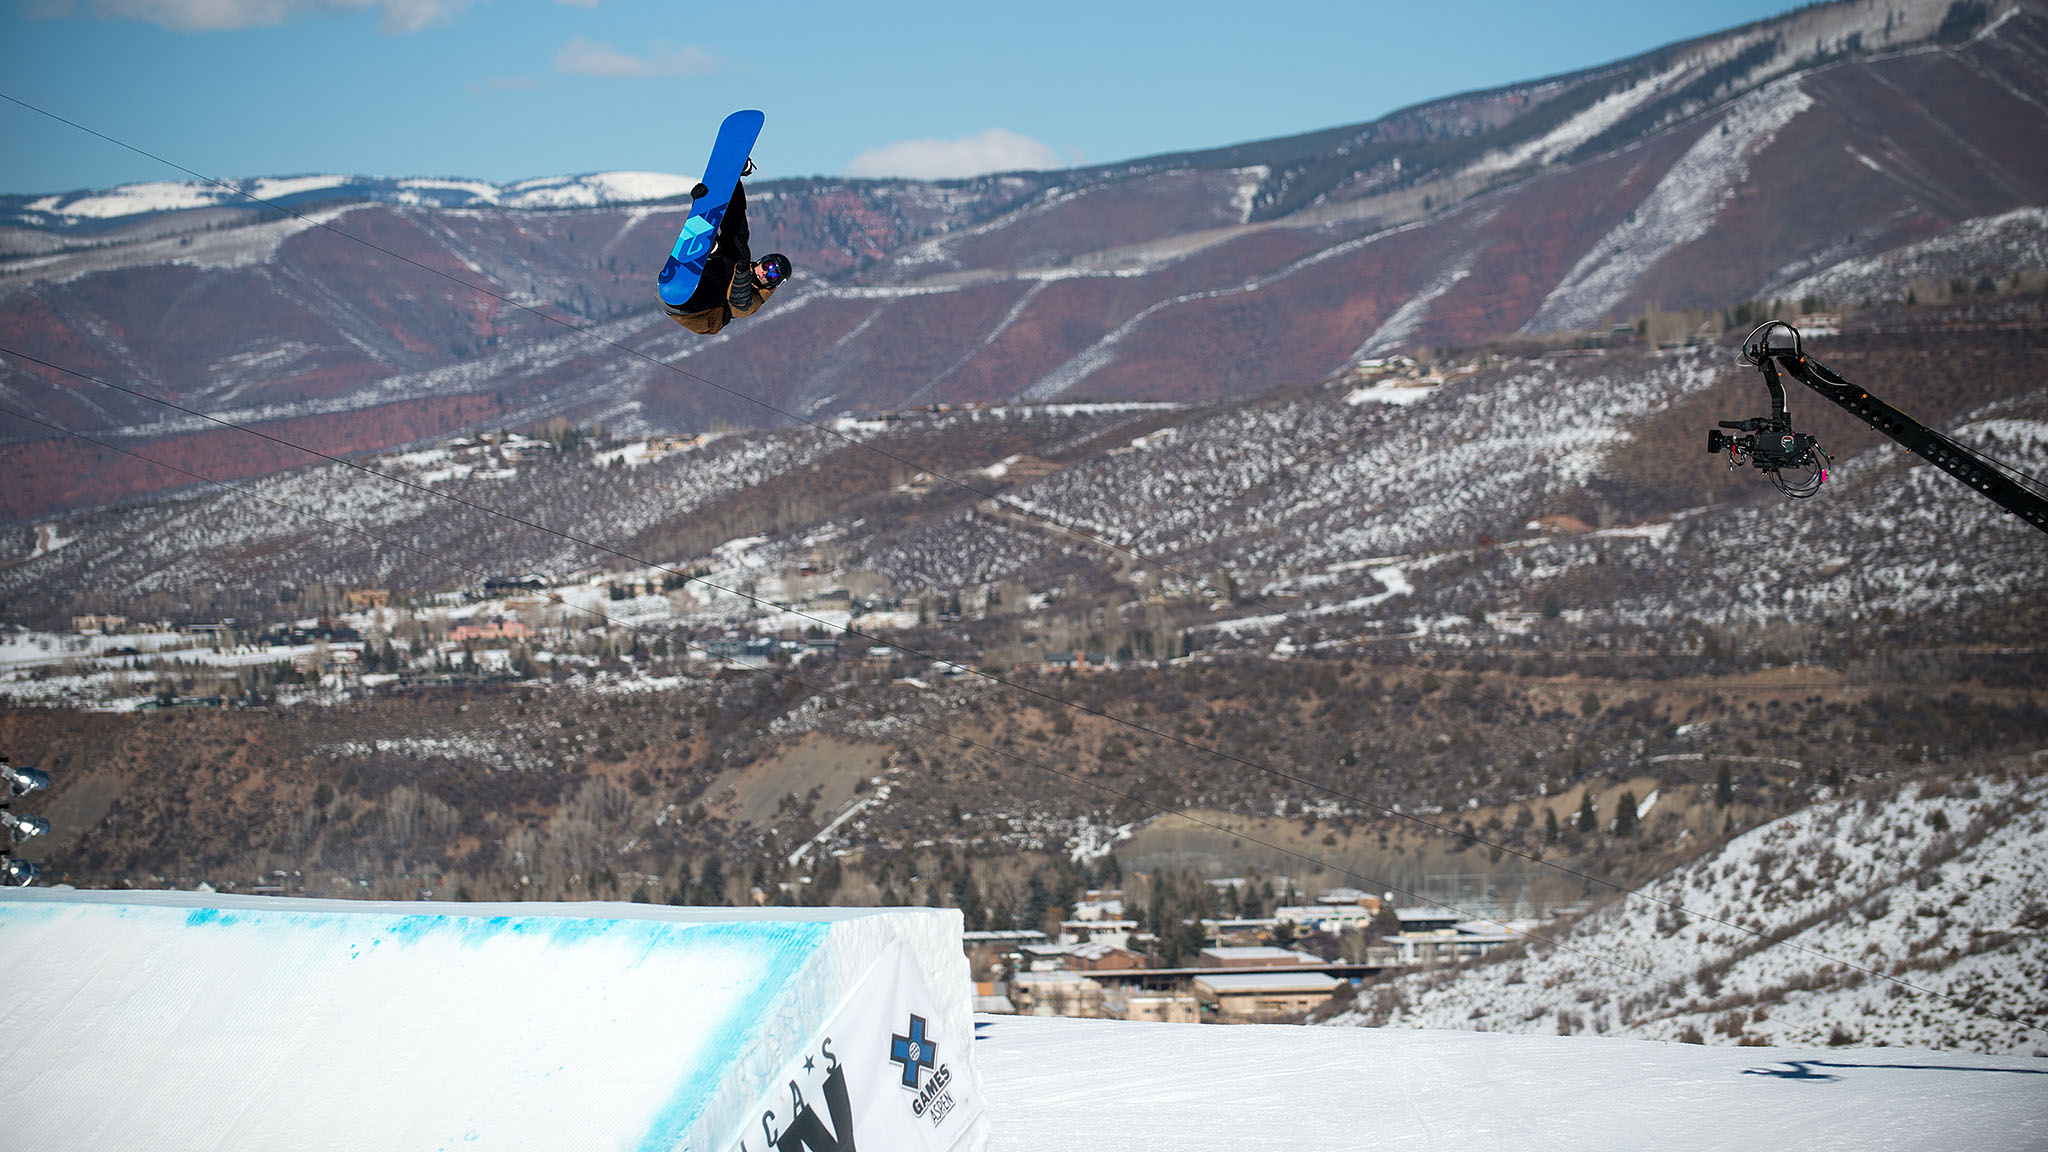 Max Parrot won two gold medals in under 24 hours at X Games Aspen 2014.